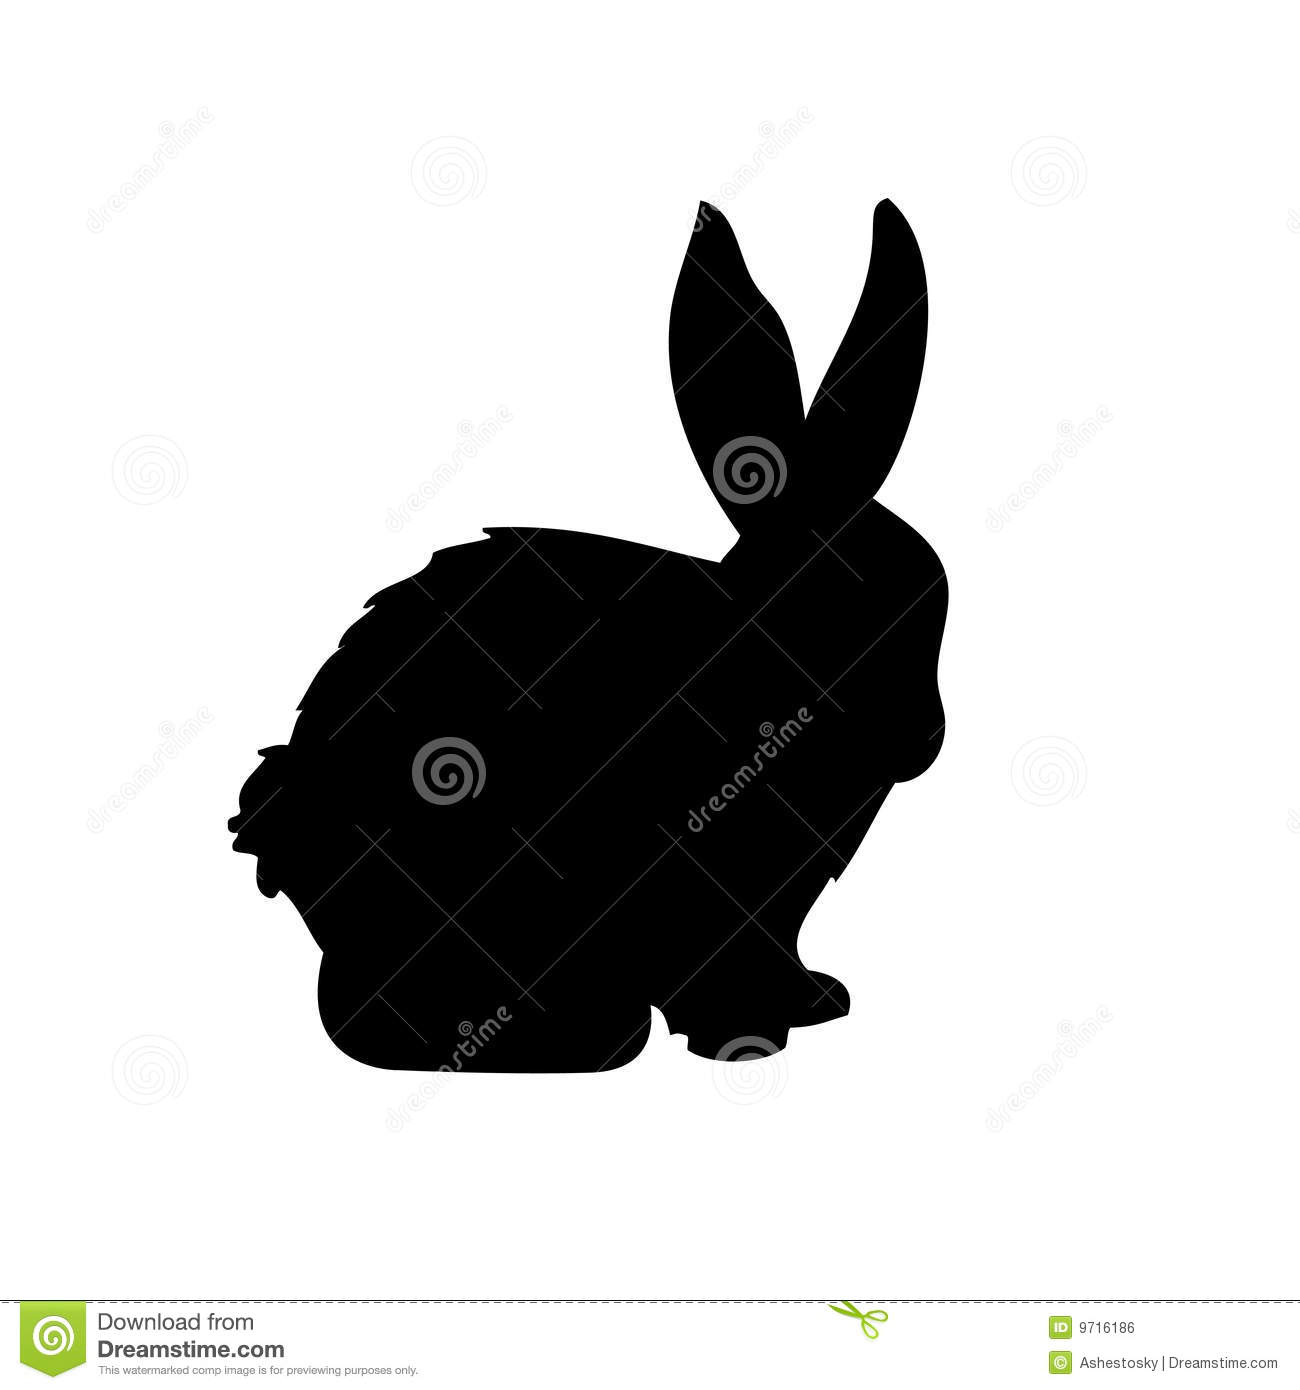 Rabbit vector silhouette